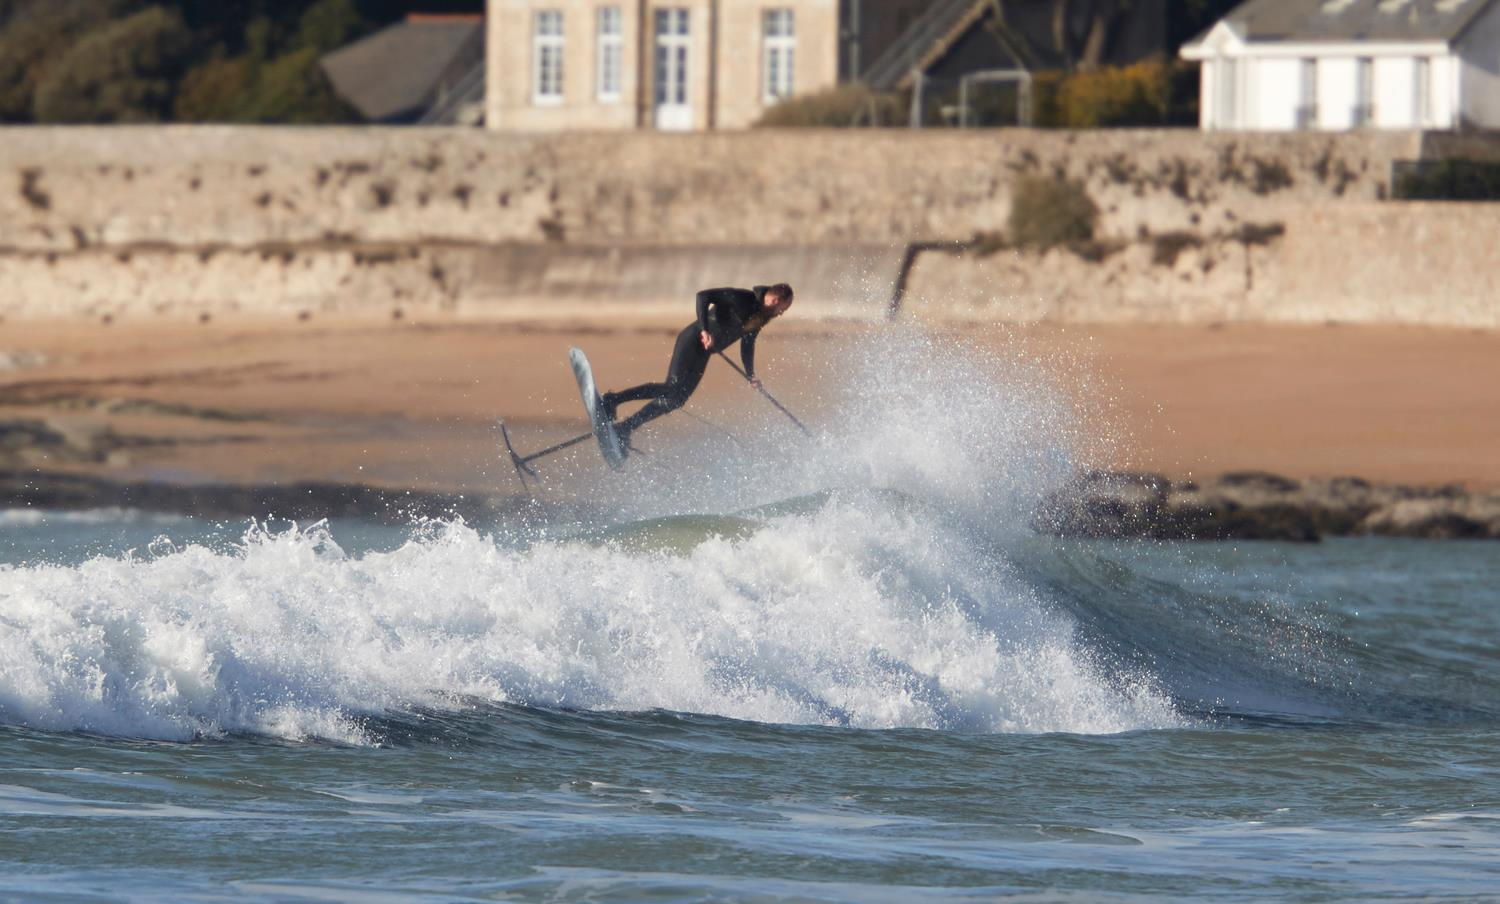 Stand up paddle foil de plus en plus radical avec Gong !